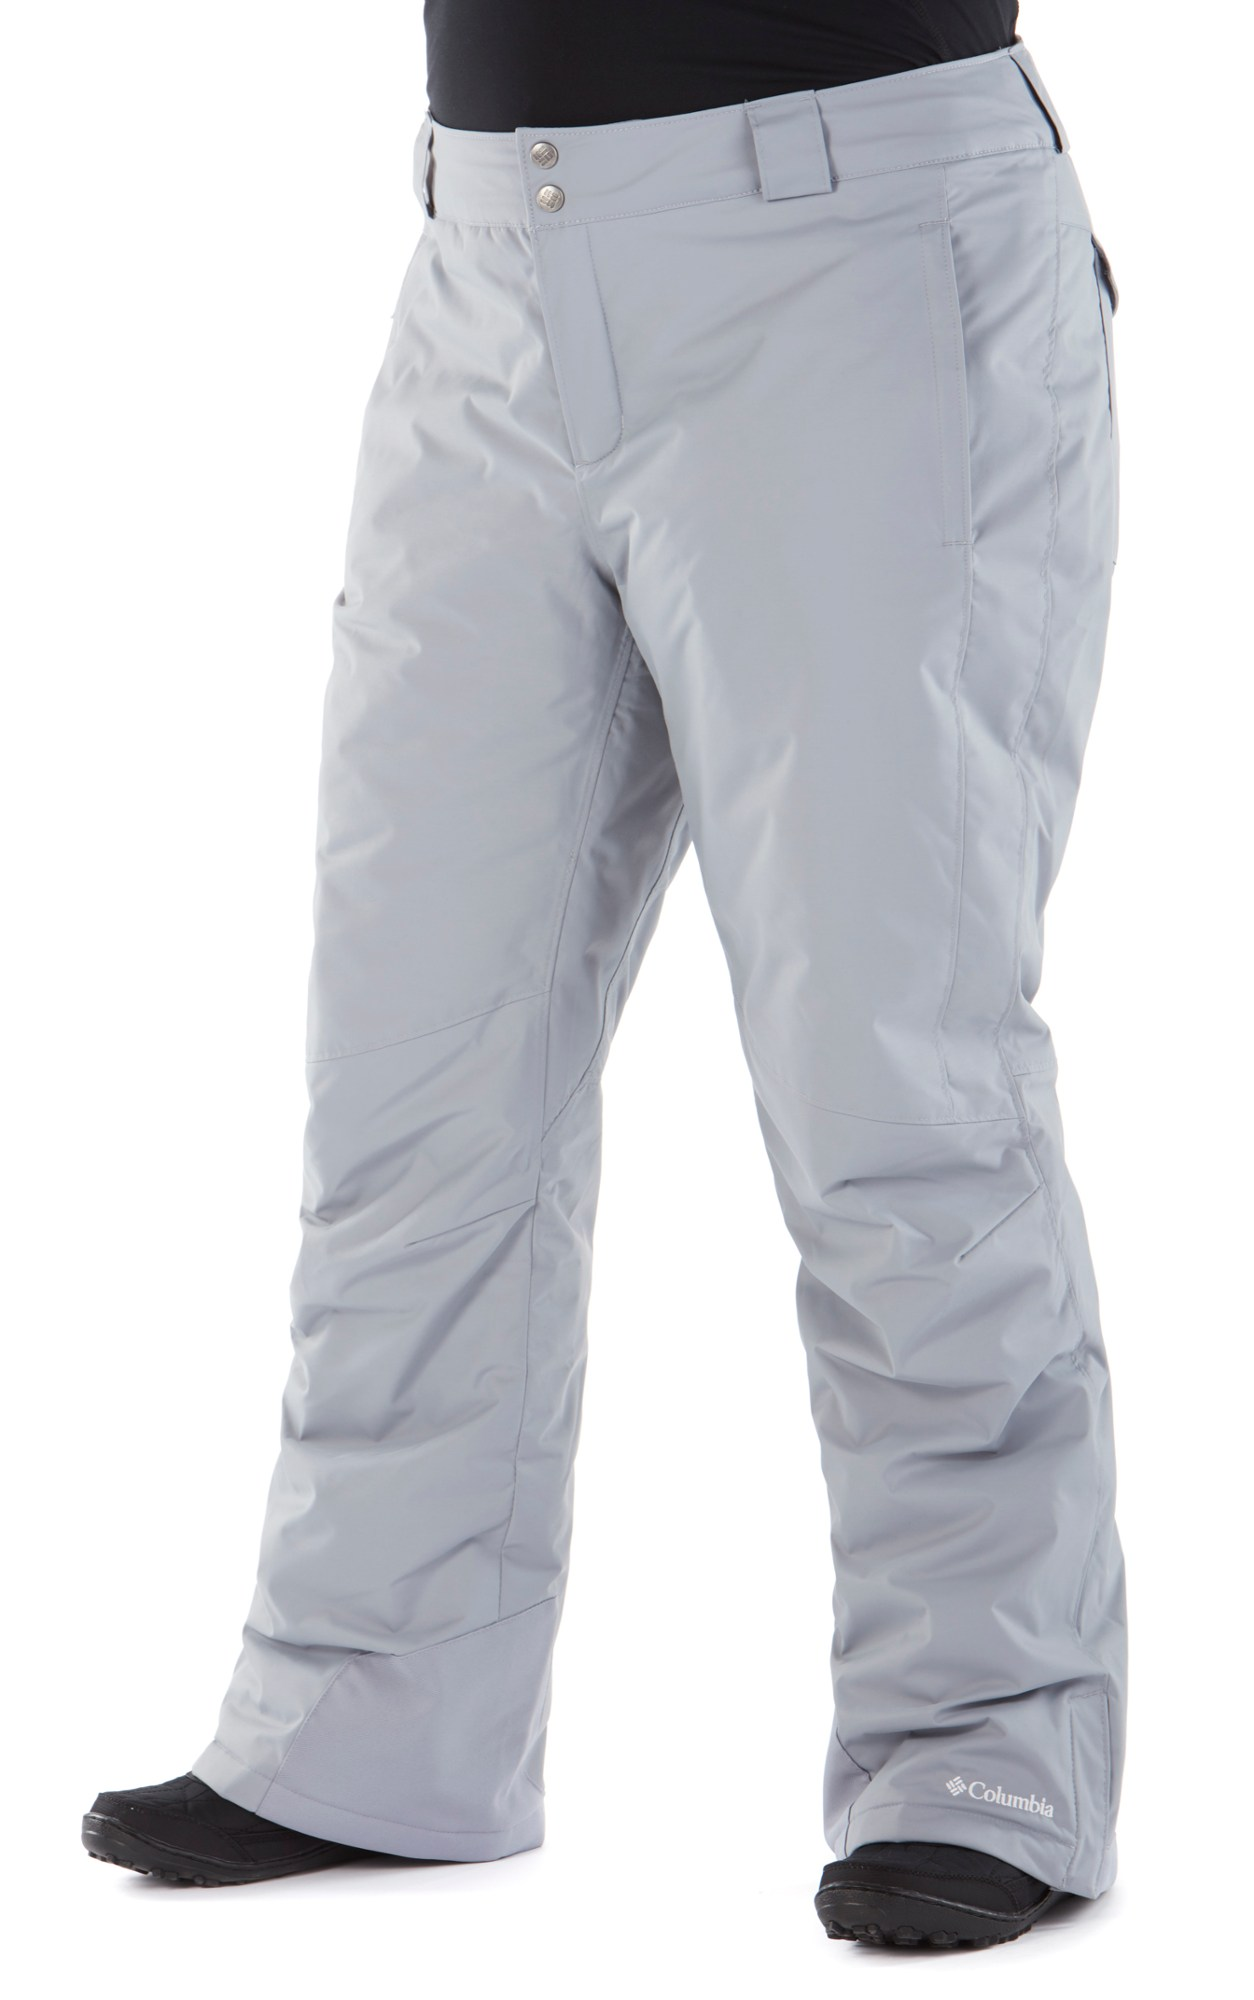 Columbia Bugaboo Omni-Heat Insulated Snow Pants - Women's Plus Sizes